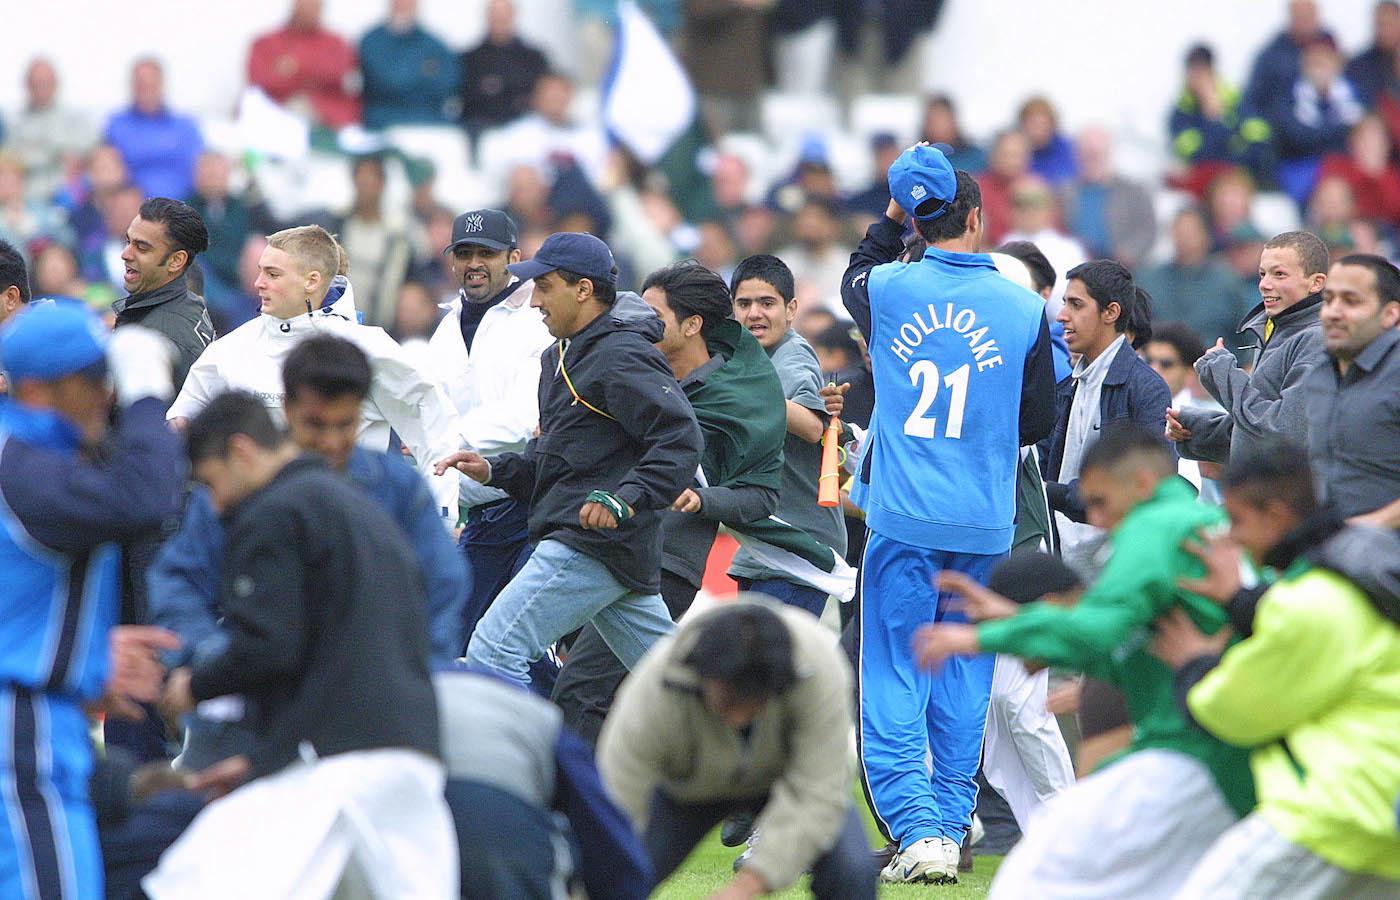 Ben Hollioake tries to find a way out of the scrum at the premature conclusion of the England vs Pakistan match at Headingley in 2001